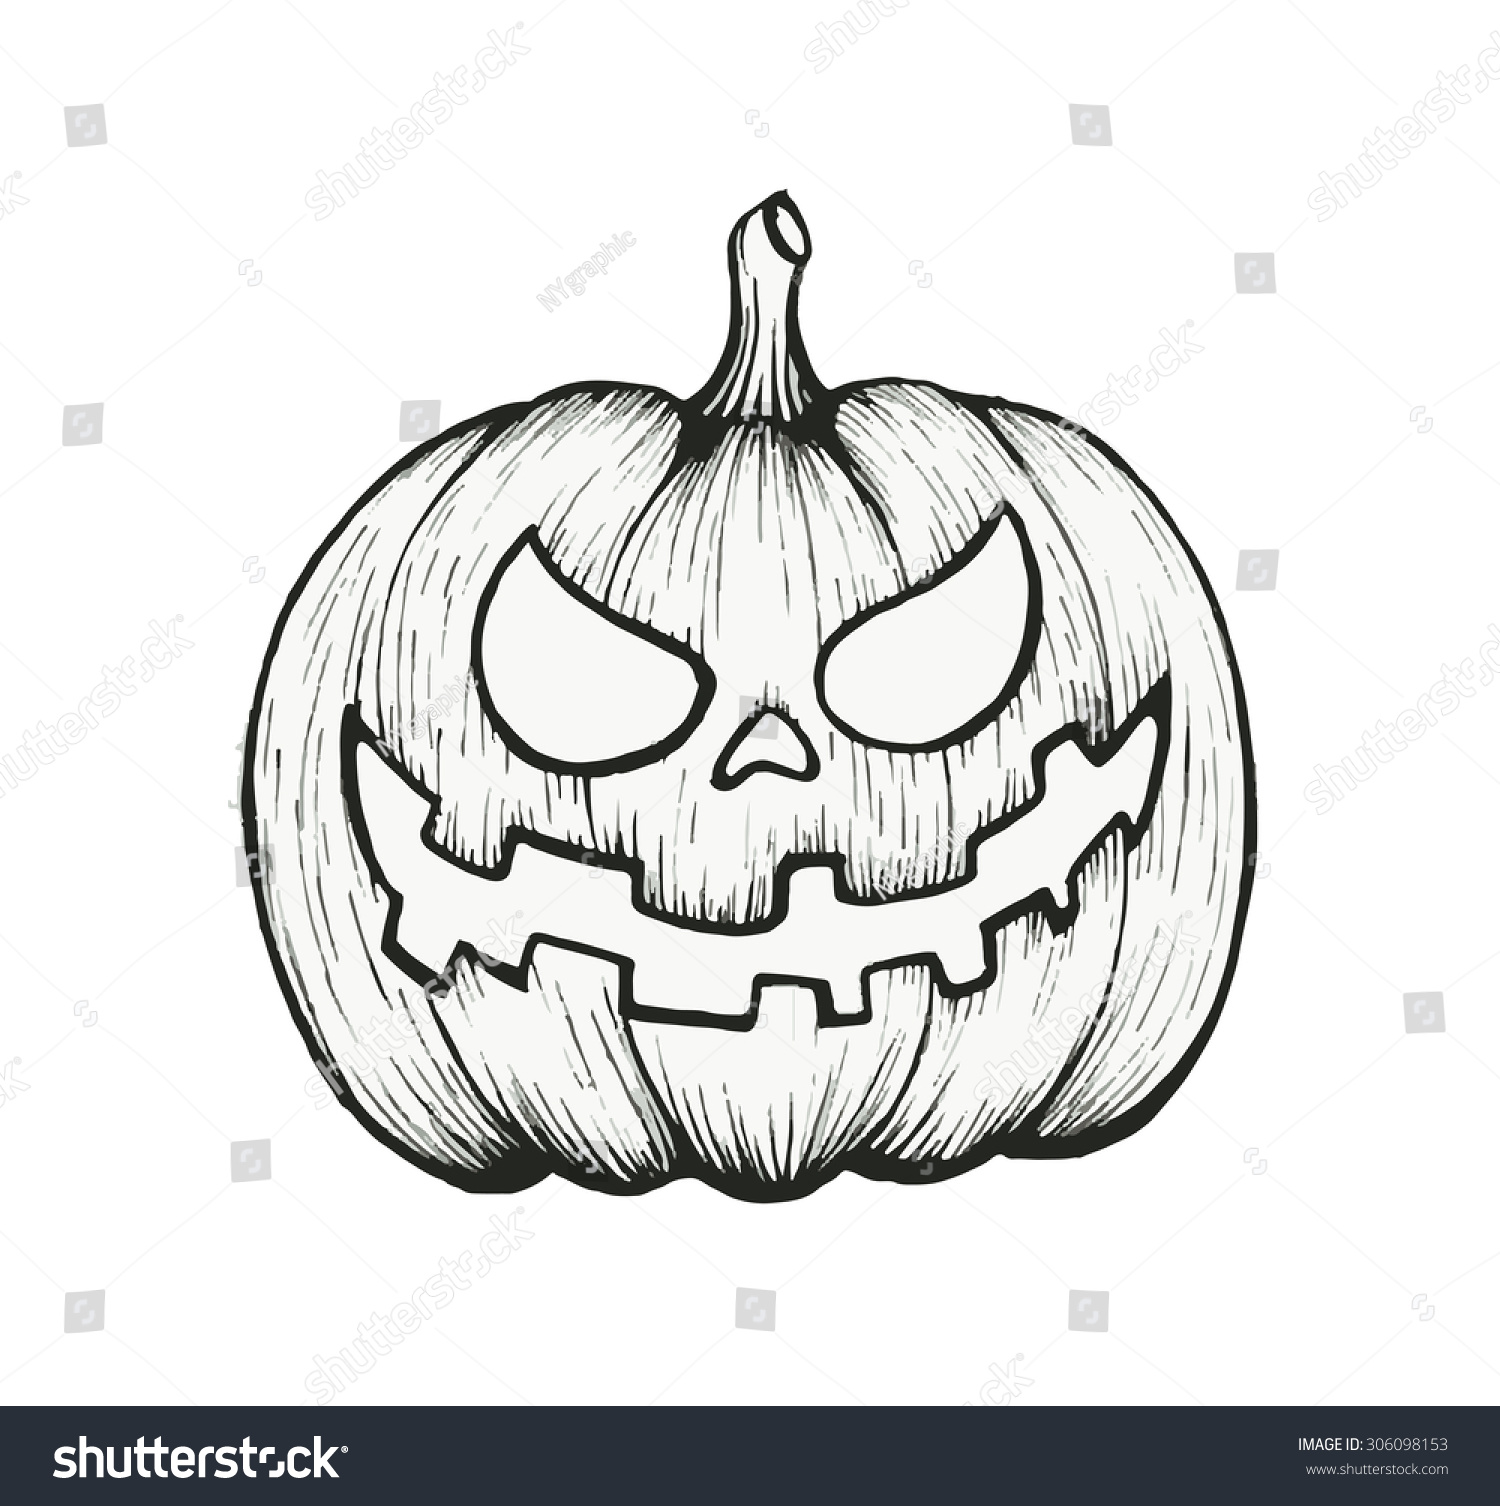 Uncategorized How To Draw A Halloween Pumpkin vector hand draw halloween pumpkin stock 306098153 of pumpkin